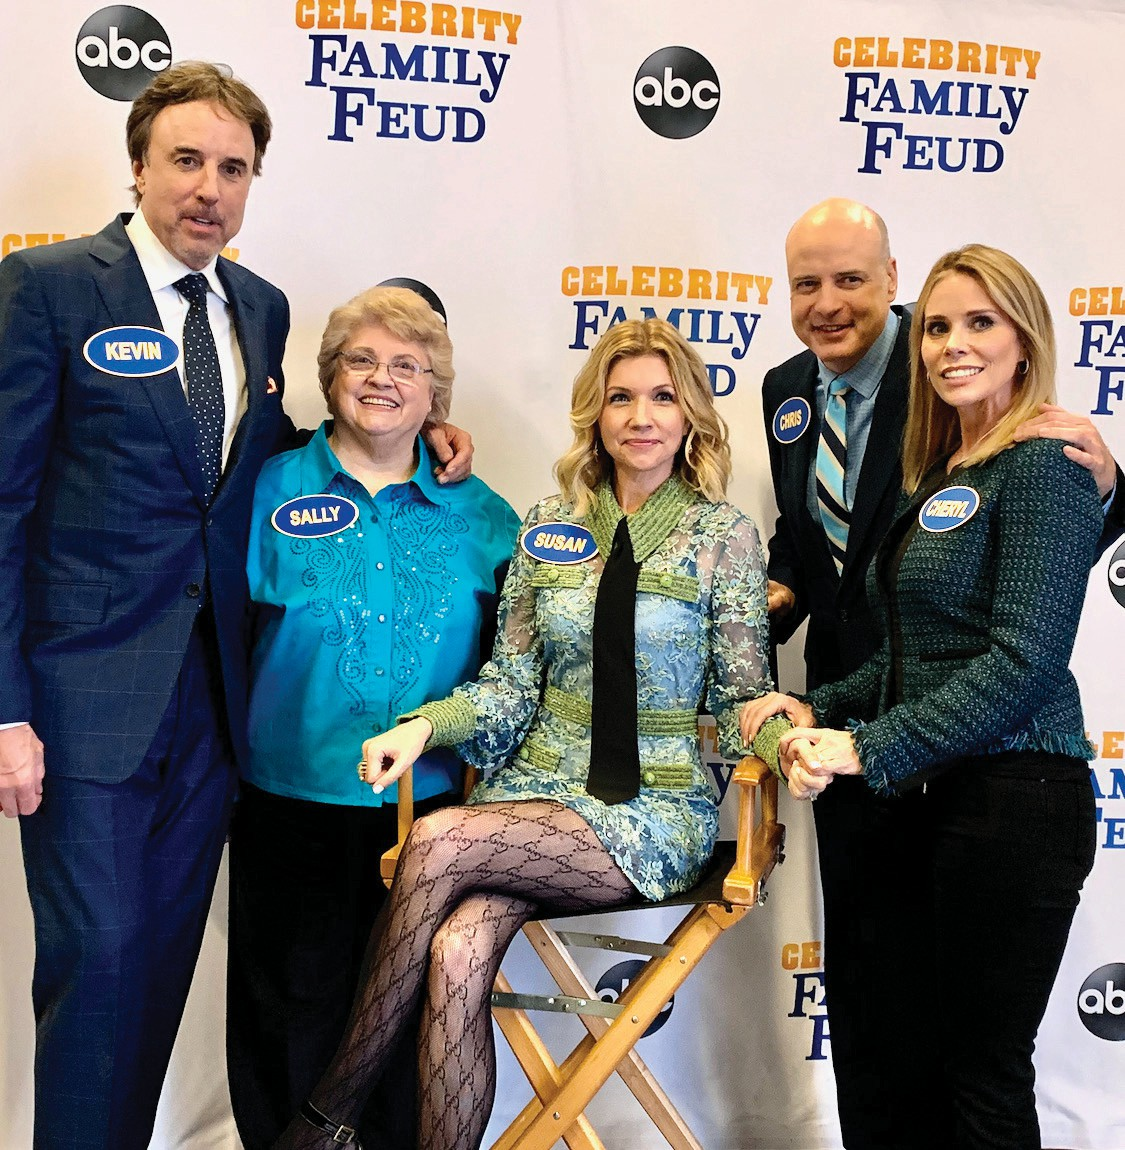 Kevin Nealon To Compete On Celebrity Family Feud For Hope Hospice Naples Florida Weekly Susan yeagley was born and raised in nashville, tennessee, and is a documented descendant of mayflower pilgrims through her mother's lineage. celebrity family feud for hope hospice